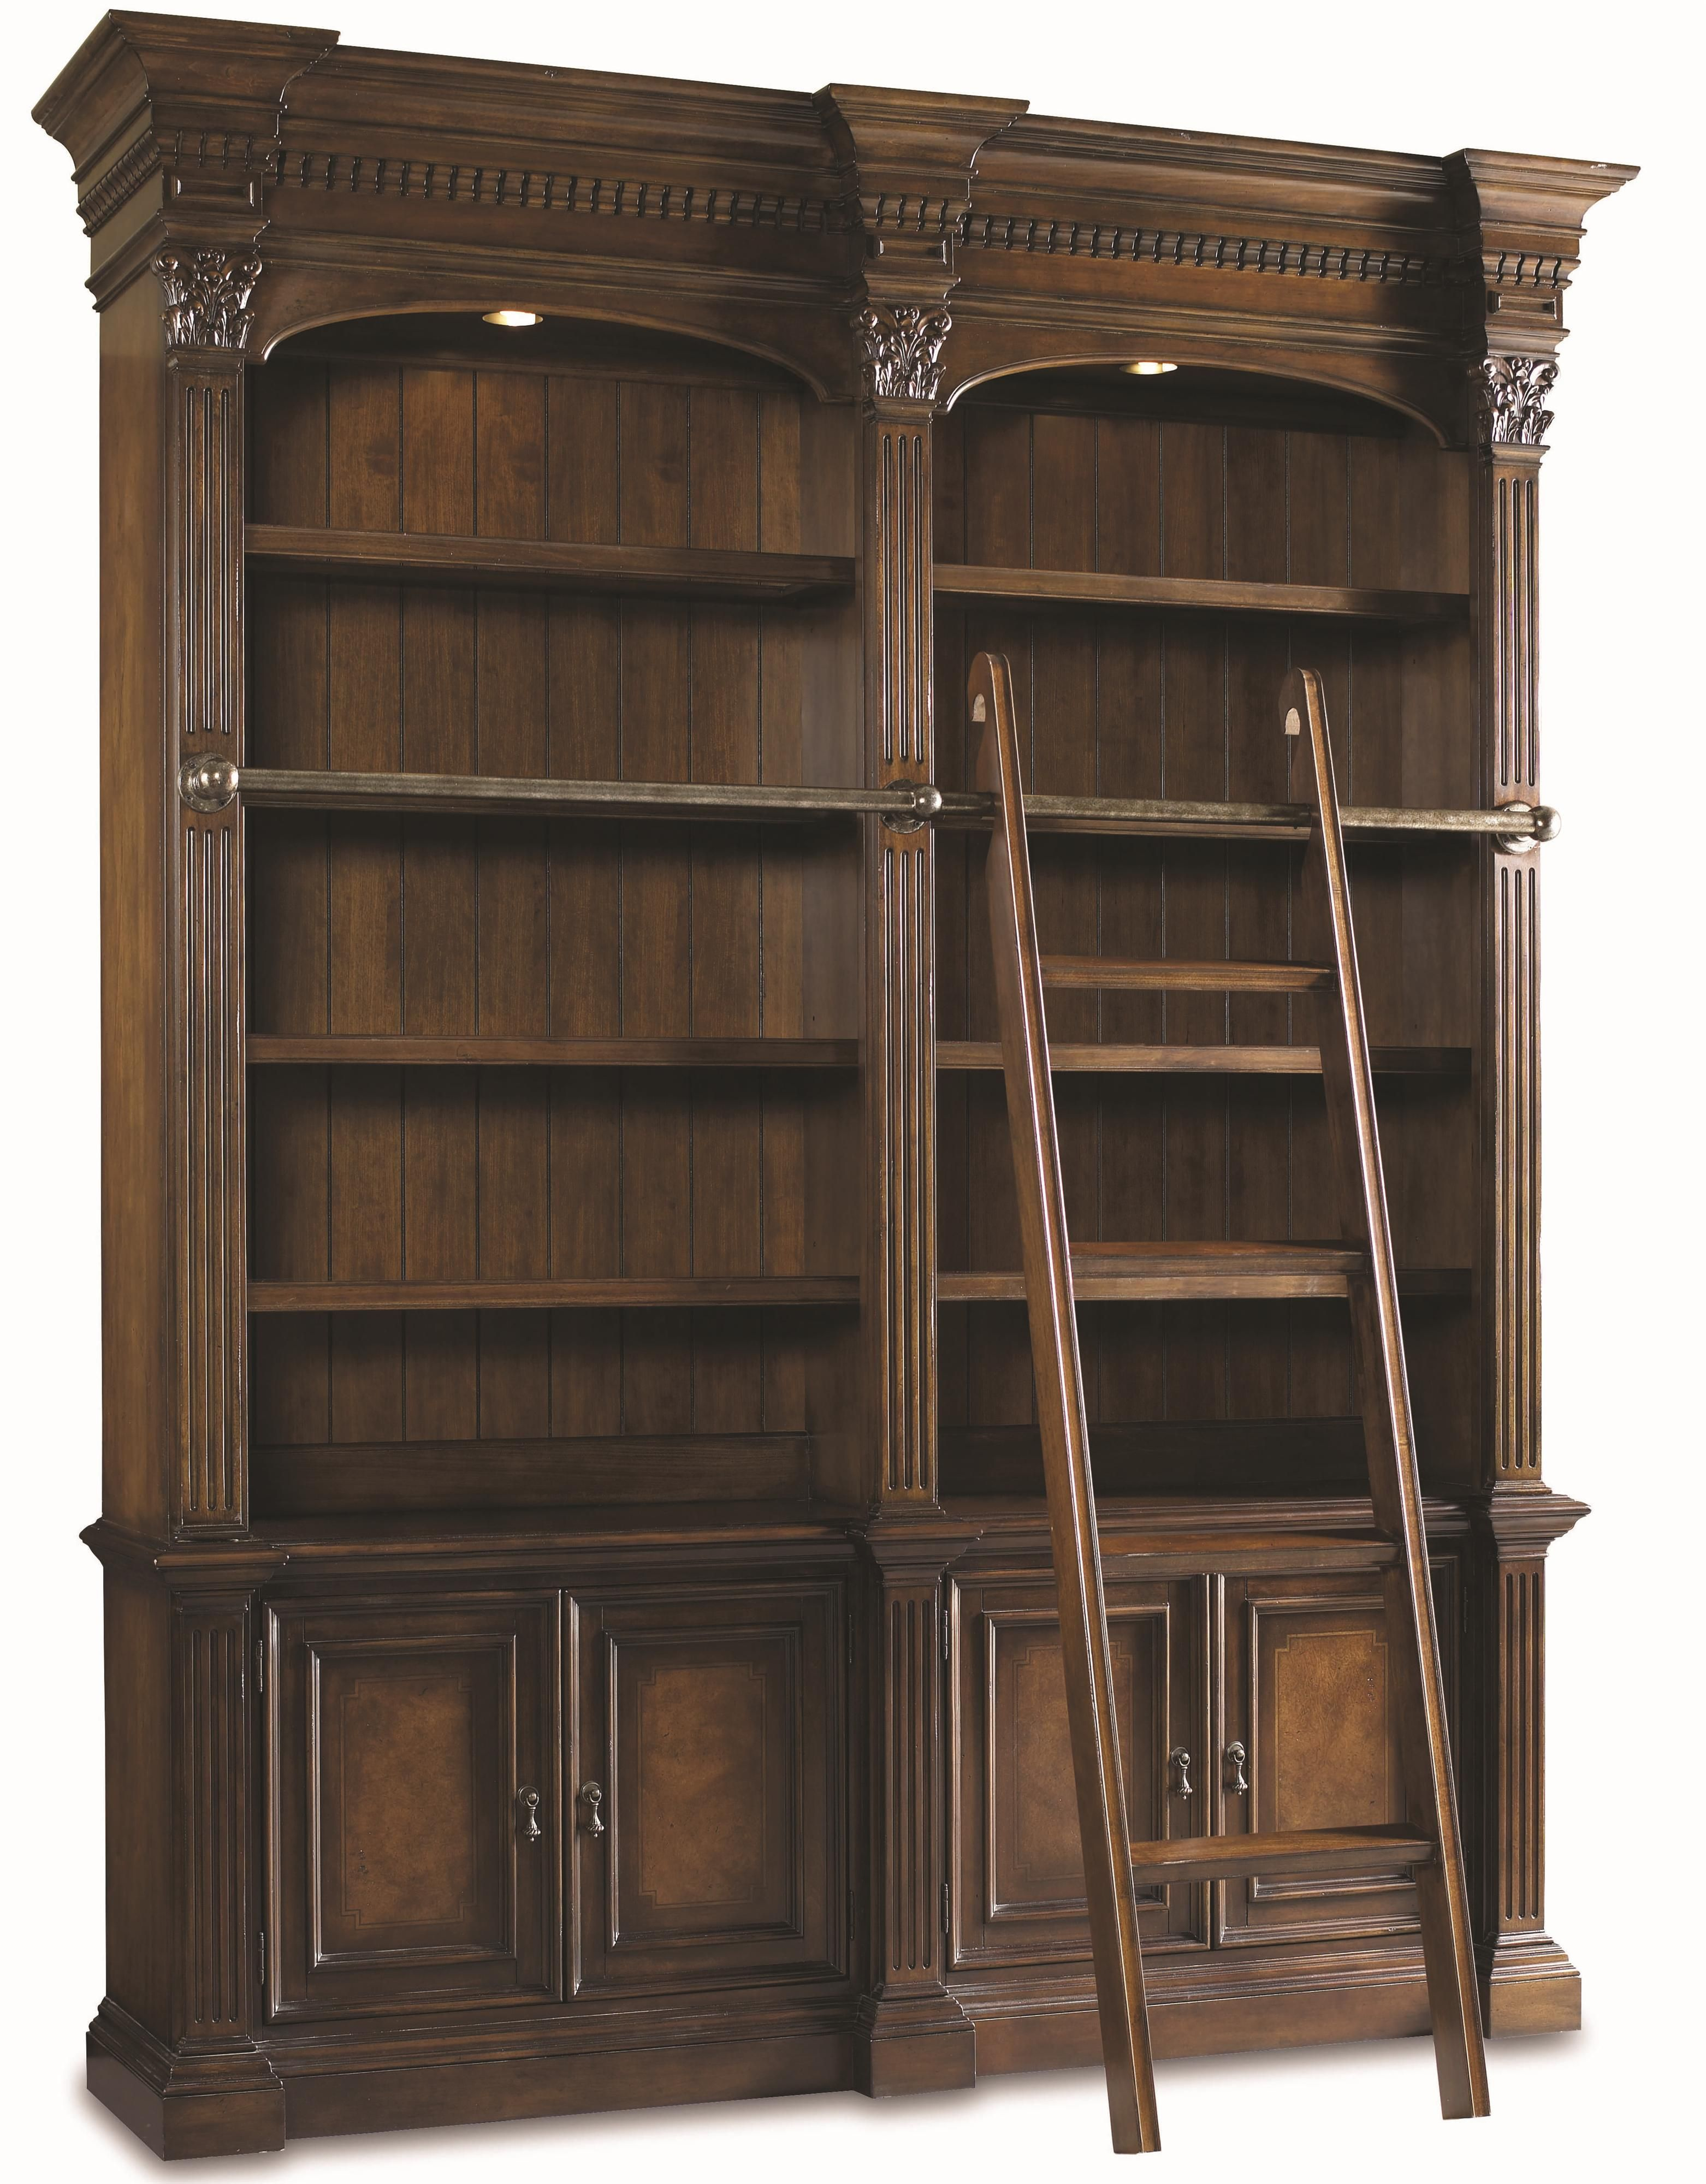 Hooker Furniture European Renaissance II Double Open Bookshelf W